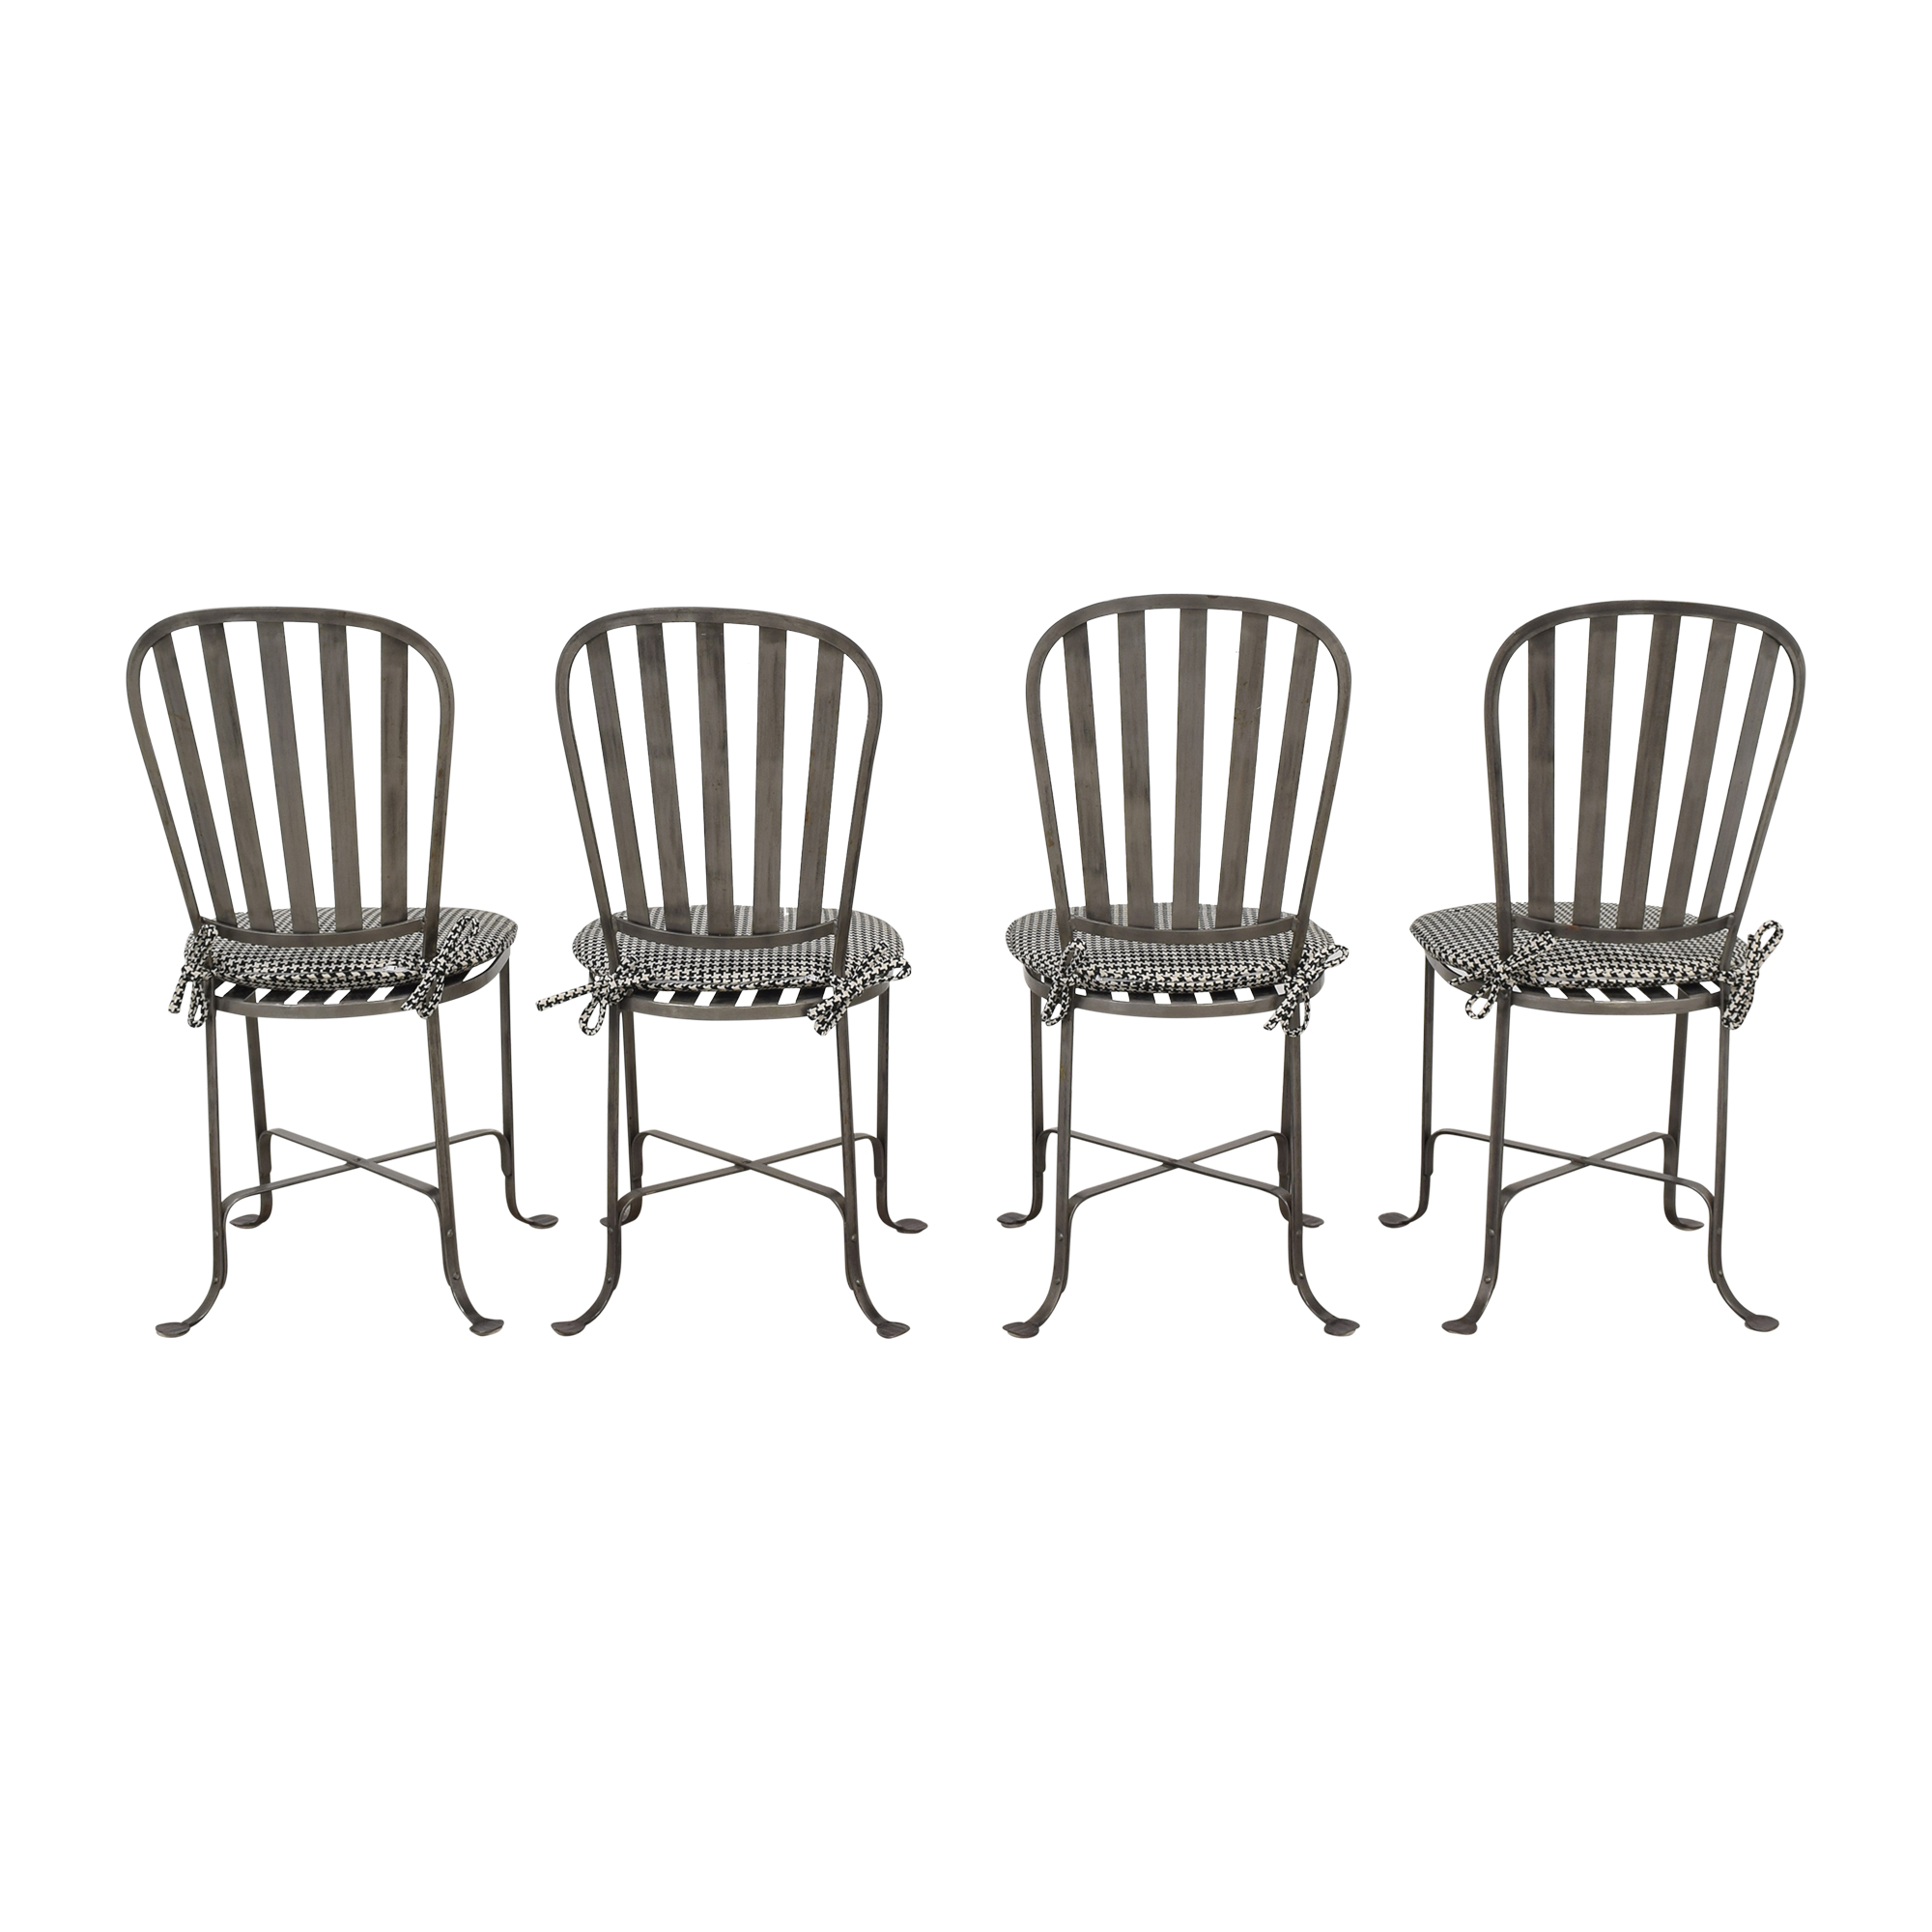 buy Bloomingdale's Bloomingdale's Bistro Chairs with Cushions online